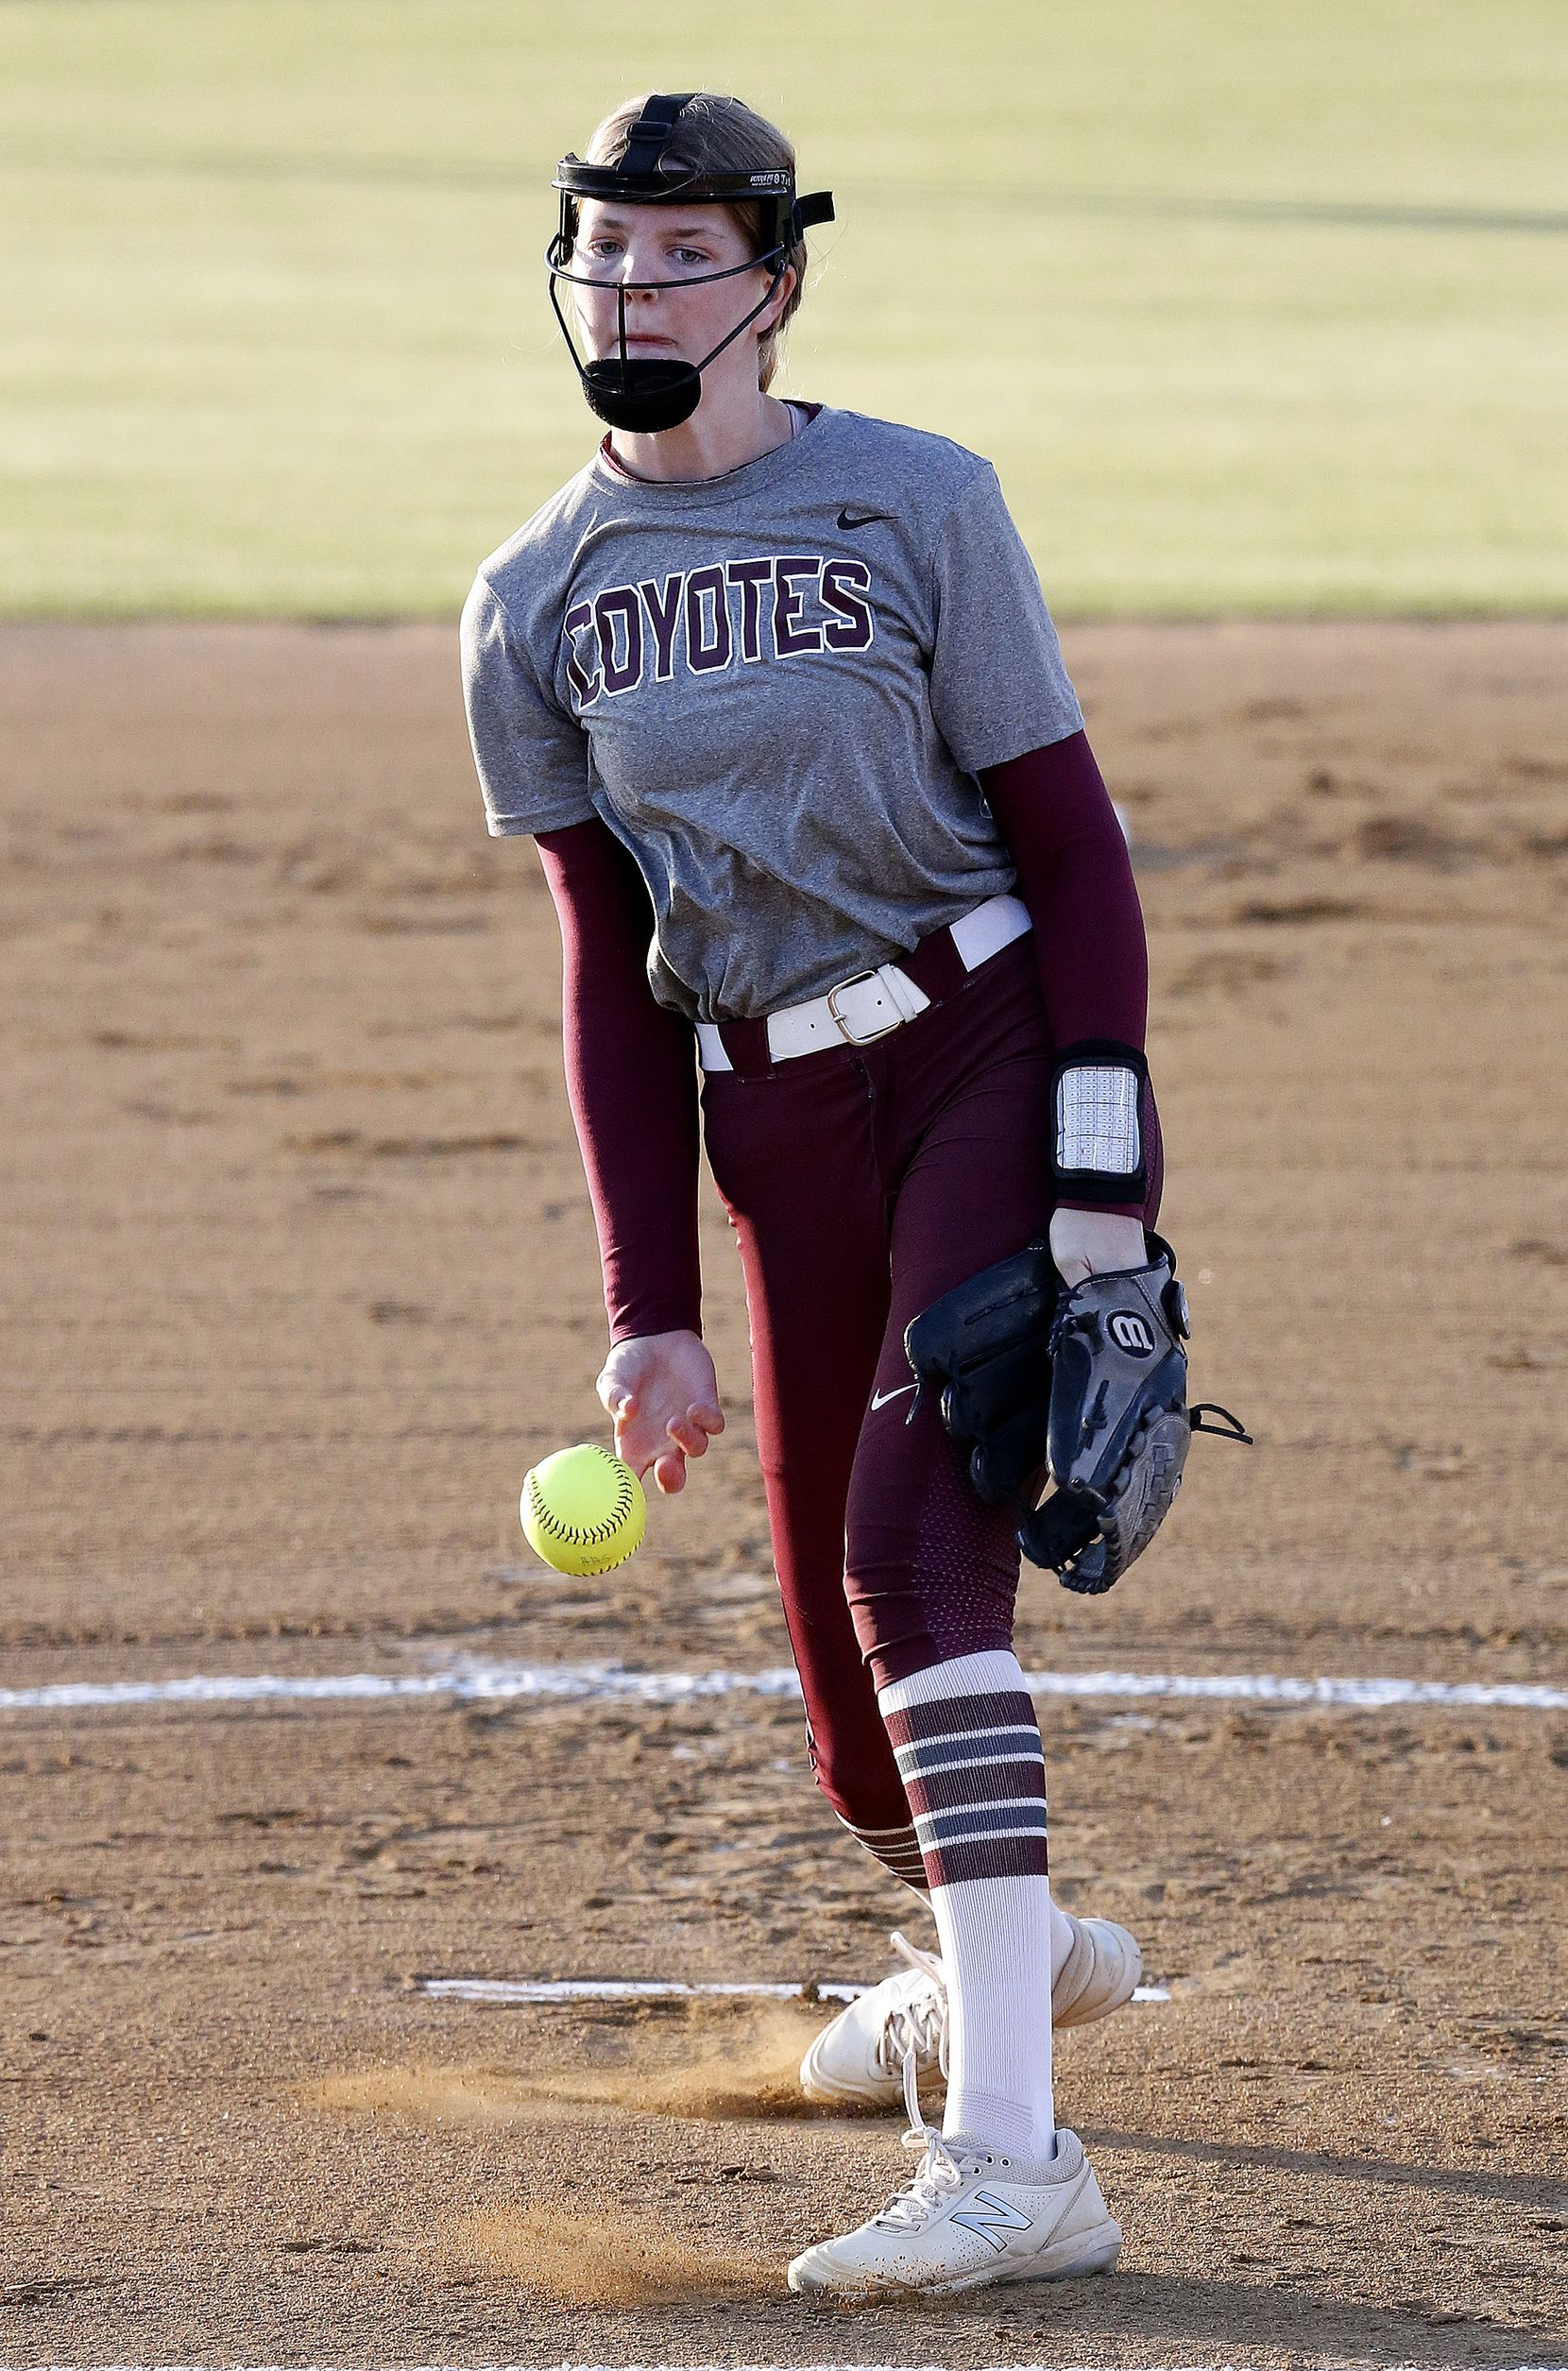 Heritage pitcher Jensin Hall (51) delivers a pitch in the first inning as Heritage High School hosted Memorial High School for the District 9-5A softball championship in Frisco on Tuesday, April 20, 2021. (Stewart F. House/Special Contributor)